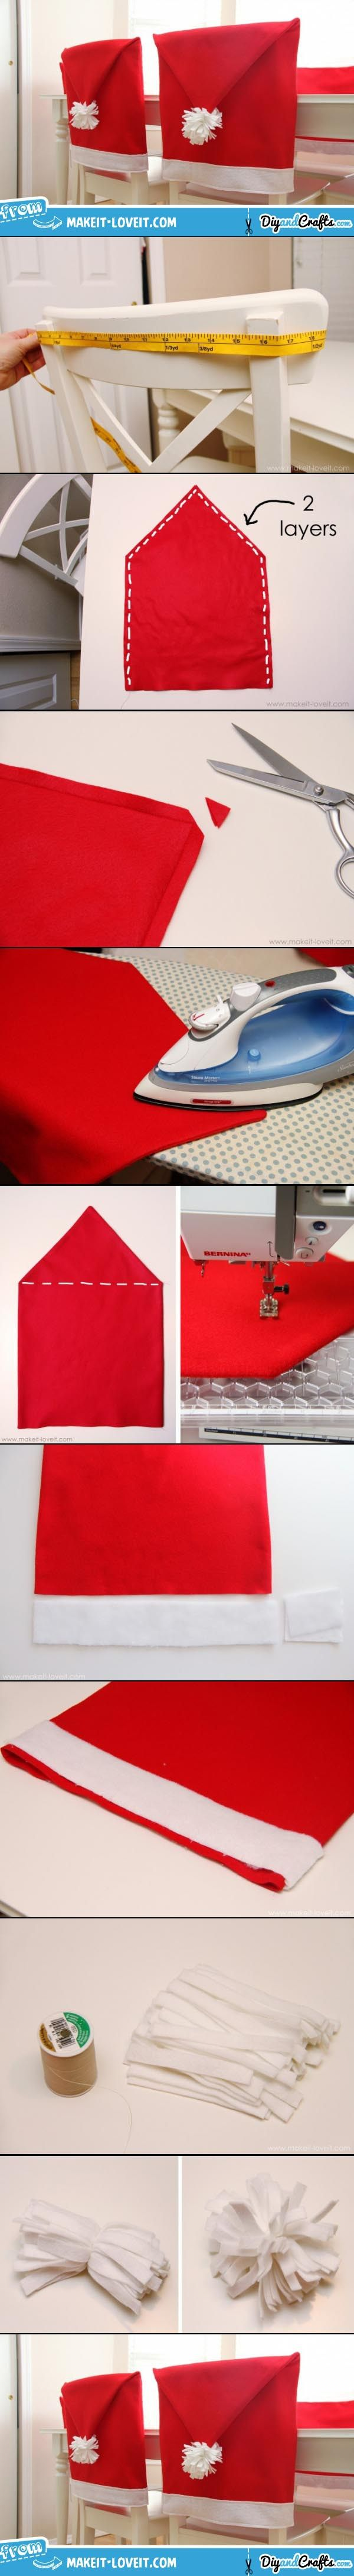 Red Santa Suit Holiday Dining Chair Covers Christmas Pinterest